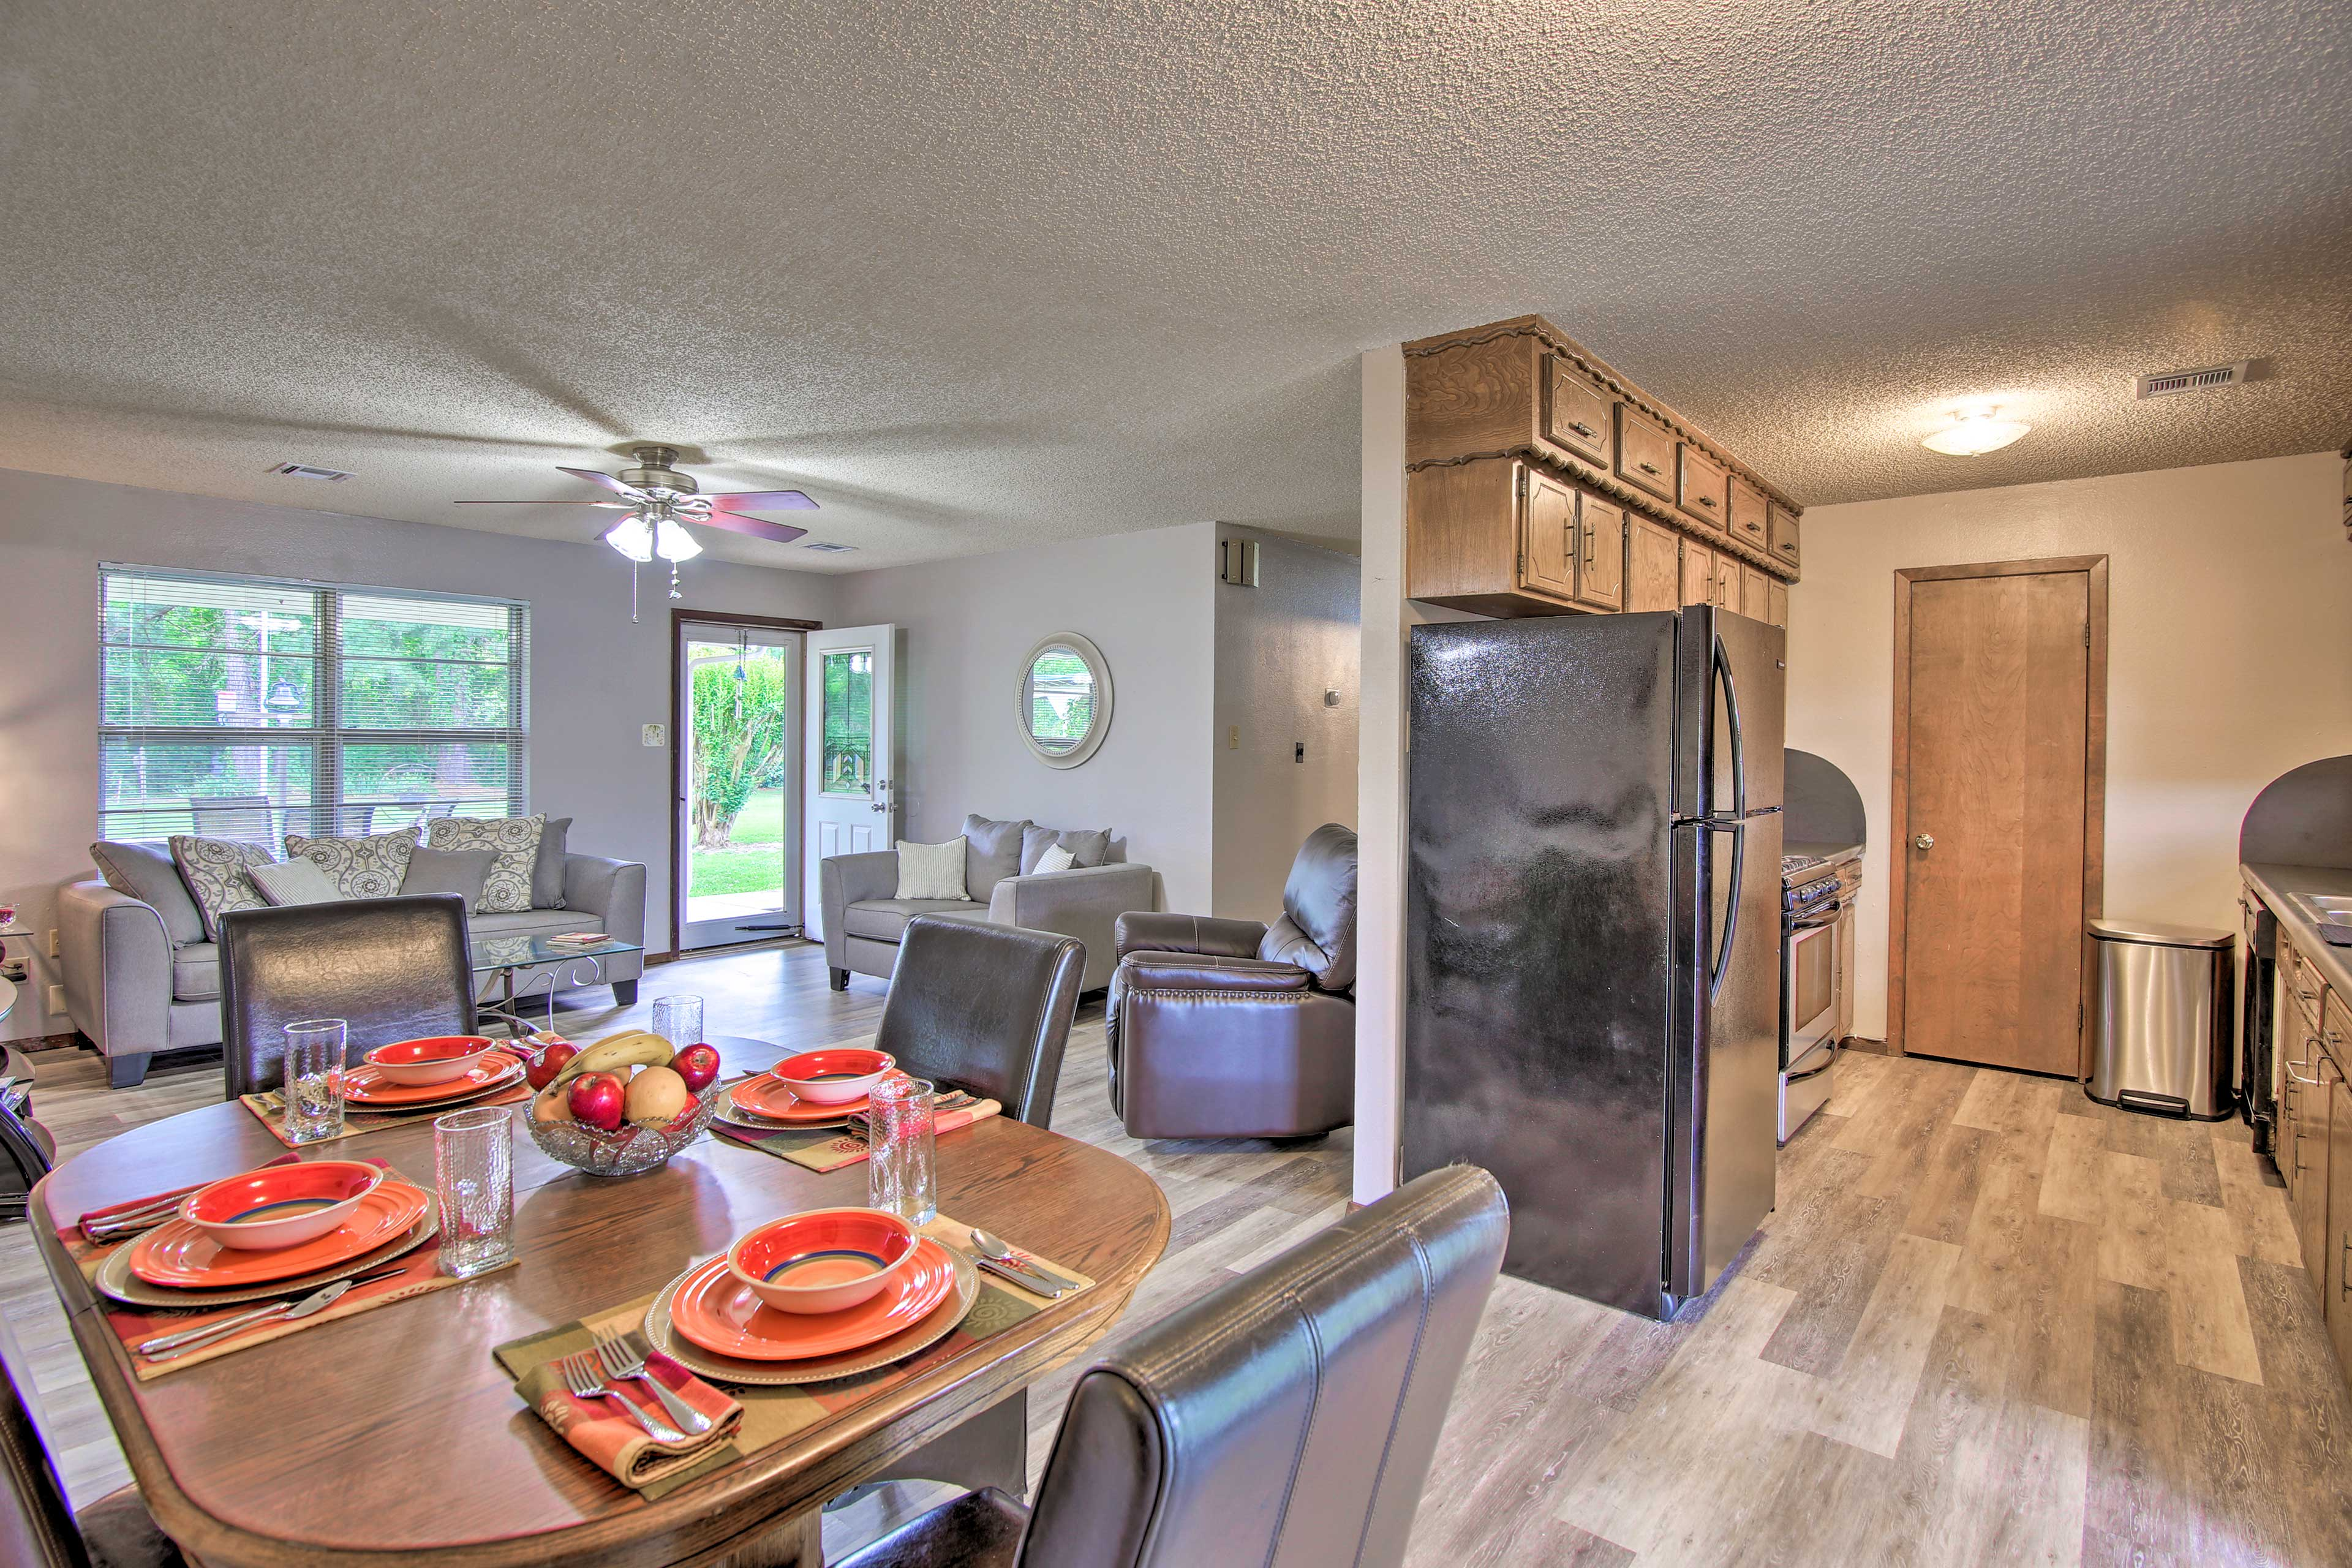 Gather around the 4-person dining table to savor home-cooked meals.